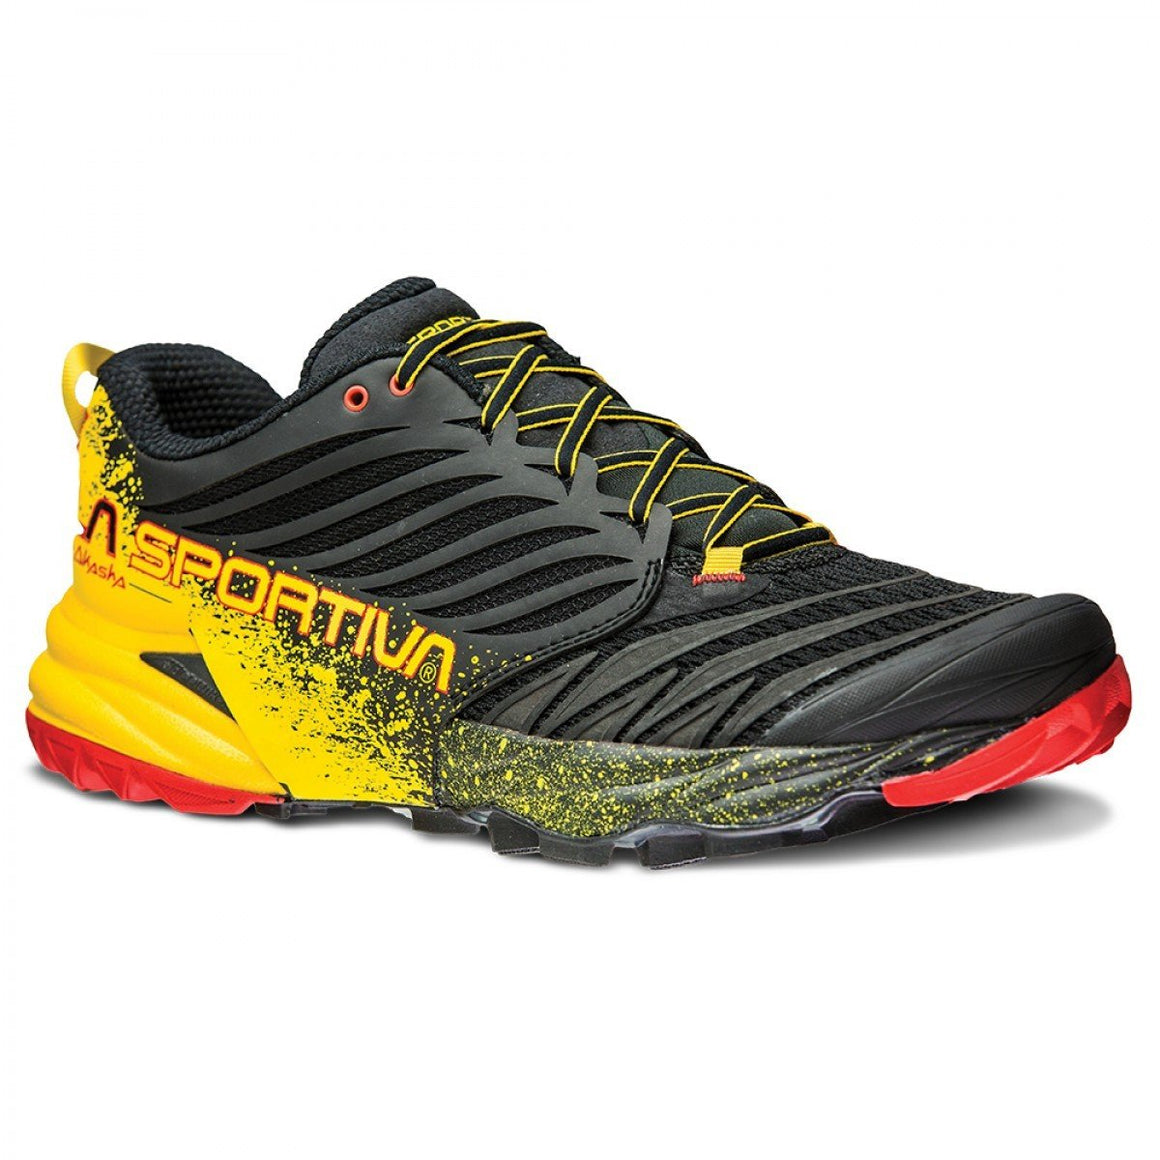 La Sportiva Akasha running shoe (Black/Yellow)